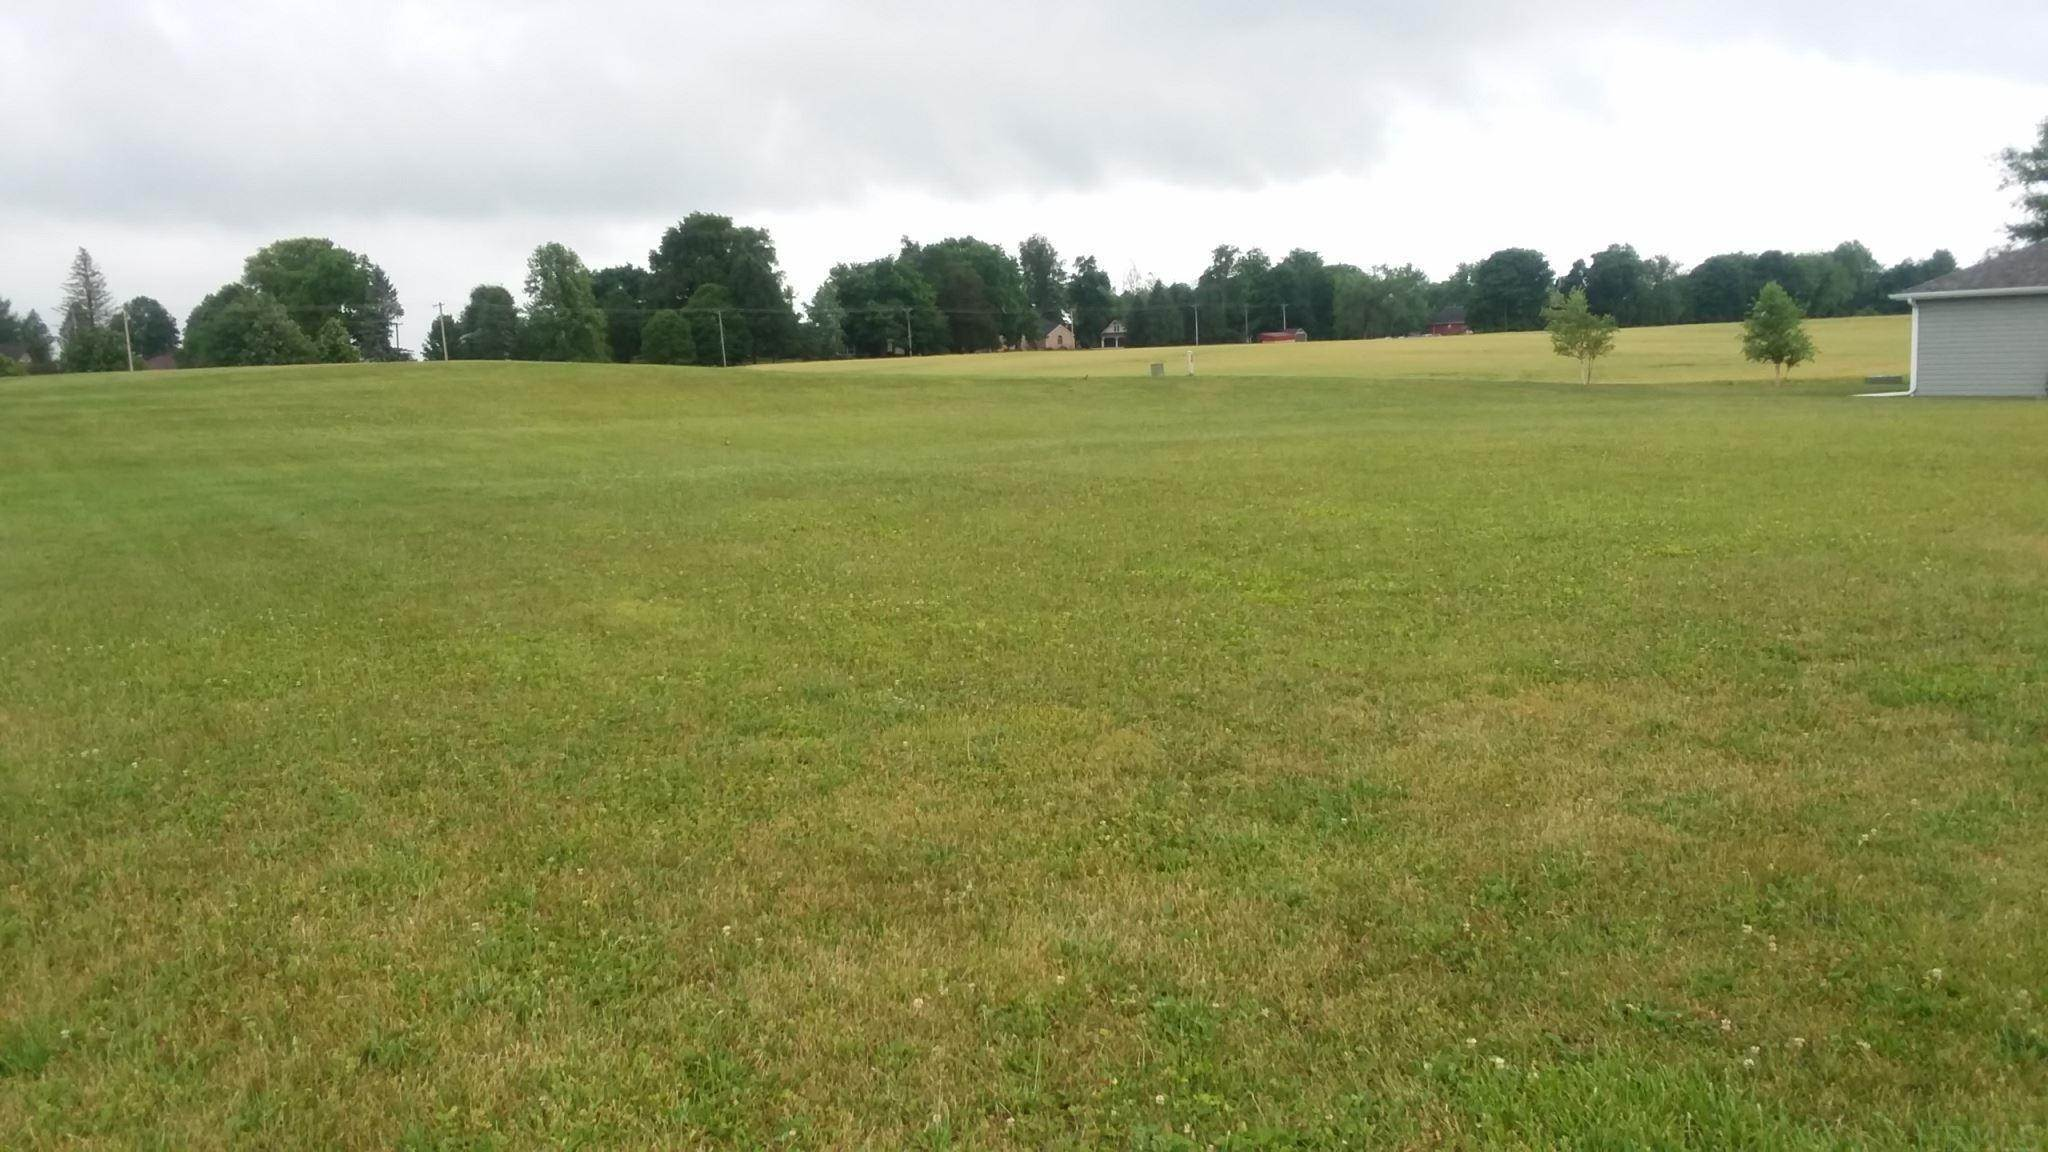 Residential Lots & Land for Sale at 340 W DEER Trail South Whitley, Indiana 46787 United States